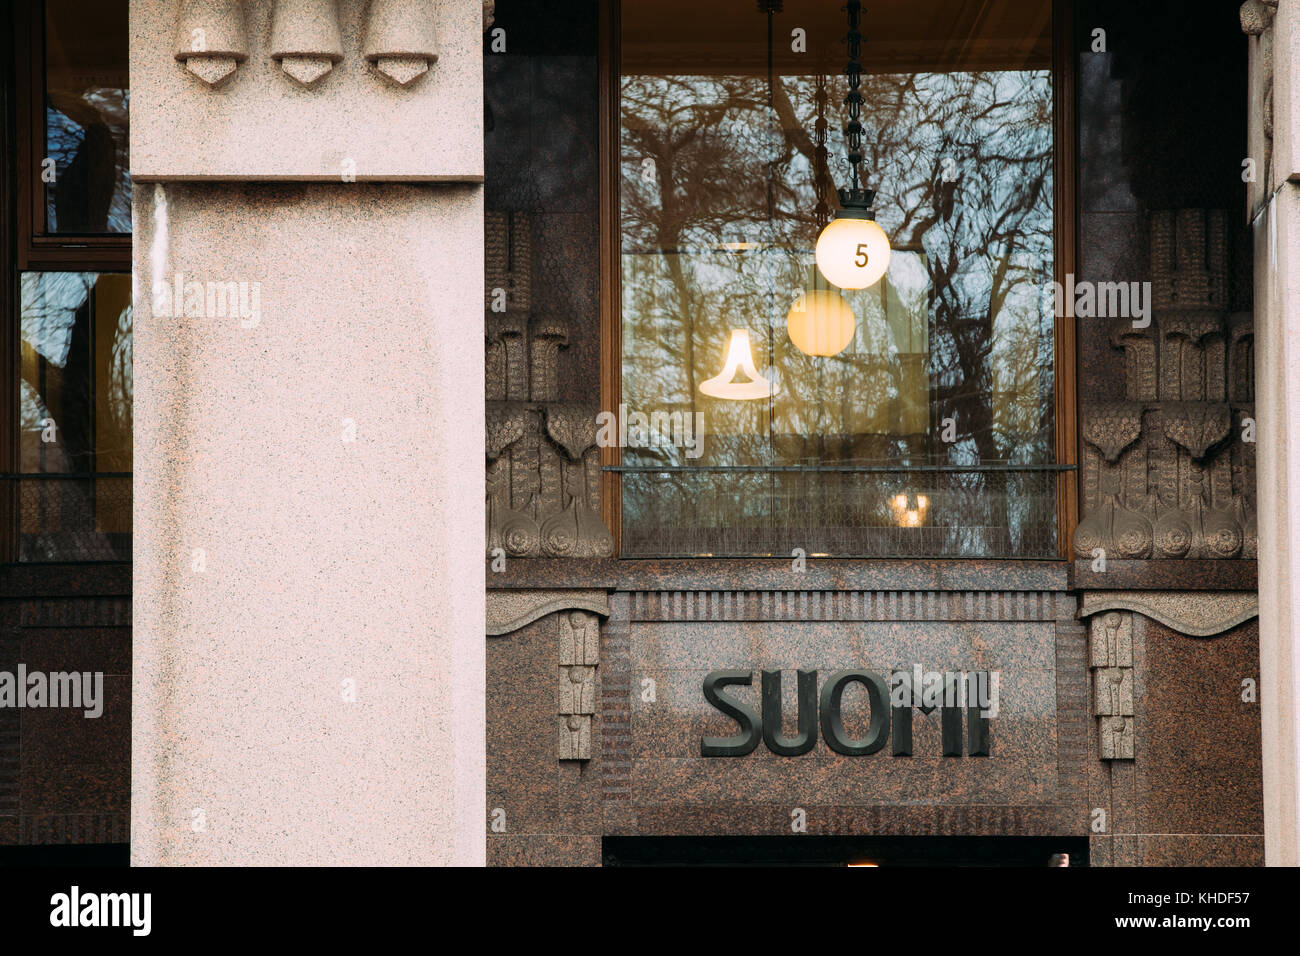 Helsinki, Finland. Details Of Incoming Group Of Art Gallery Galerie Forsblom. Stock Photo